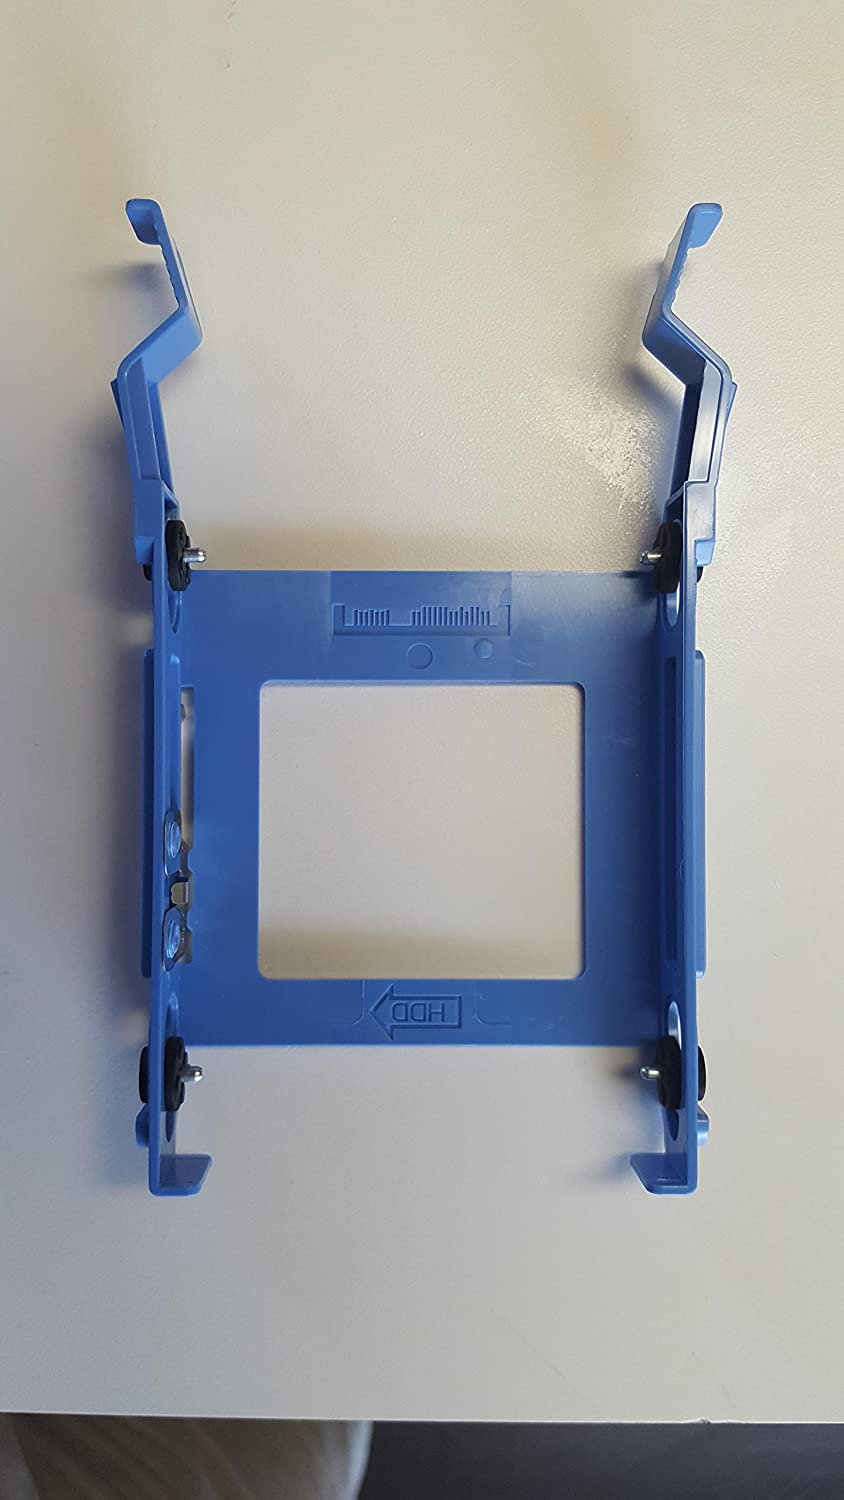 Oem For Dell Hard Drive OptiPlex 3040 5040 7040 MT Inspiron Vostro 3600 3650 Bay Caddy HDD 2.5 SSD Bracket X9FV3